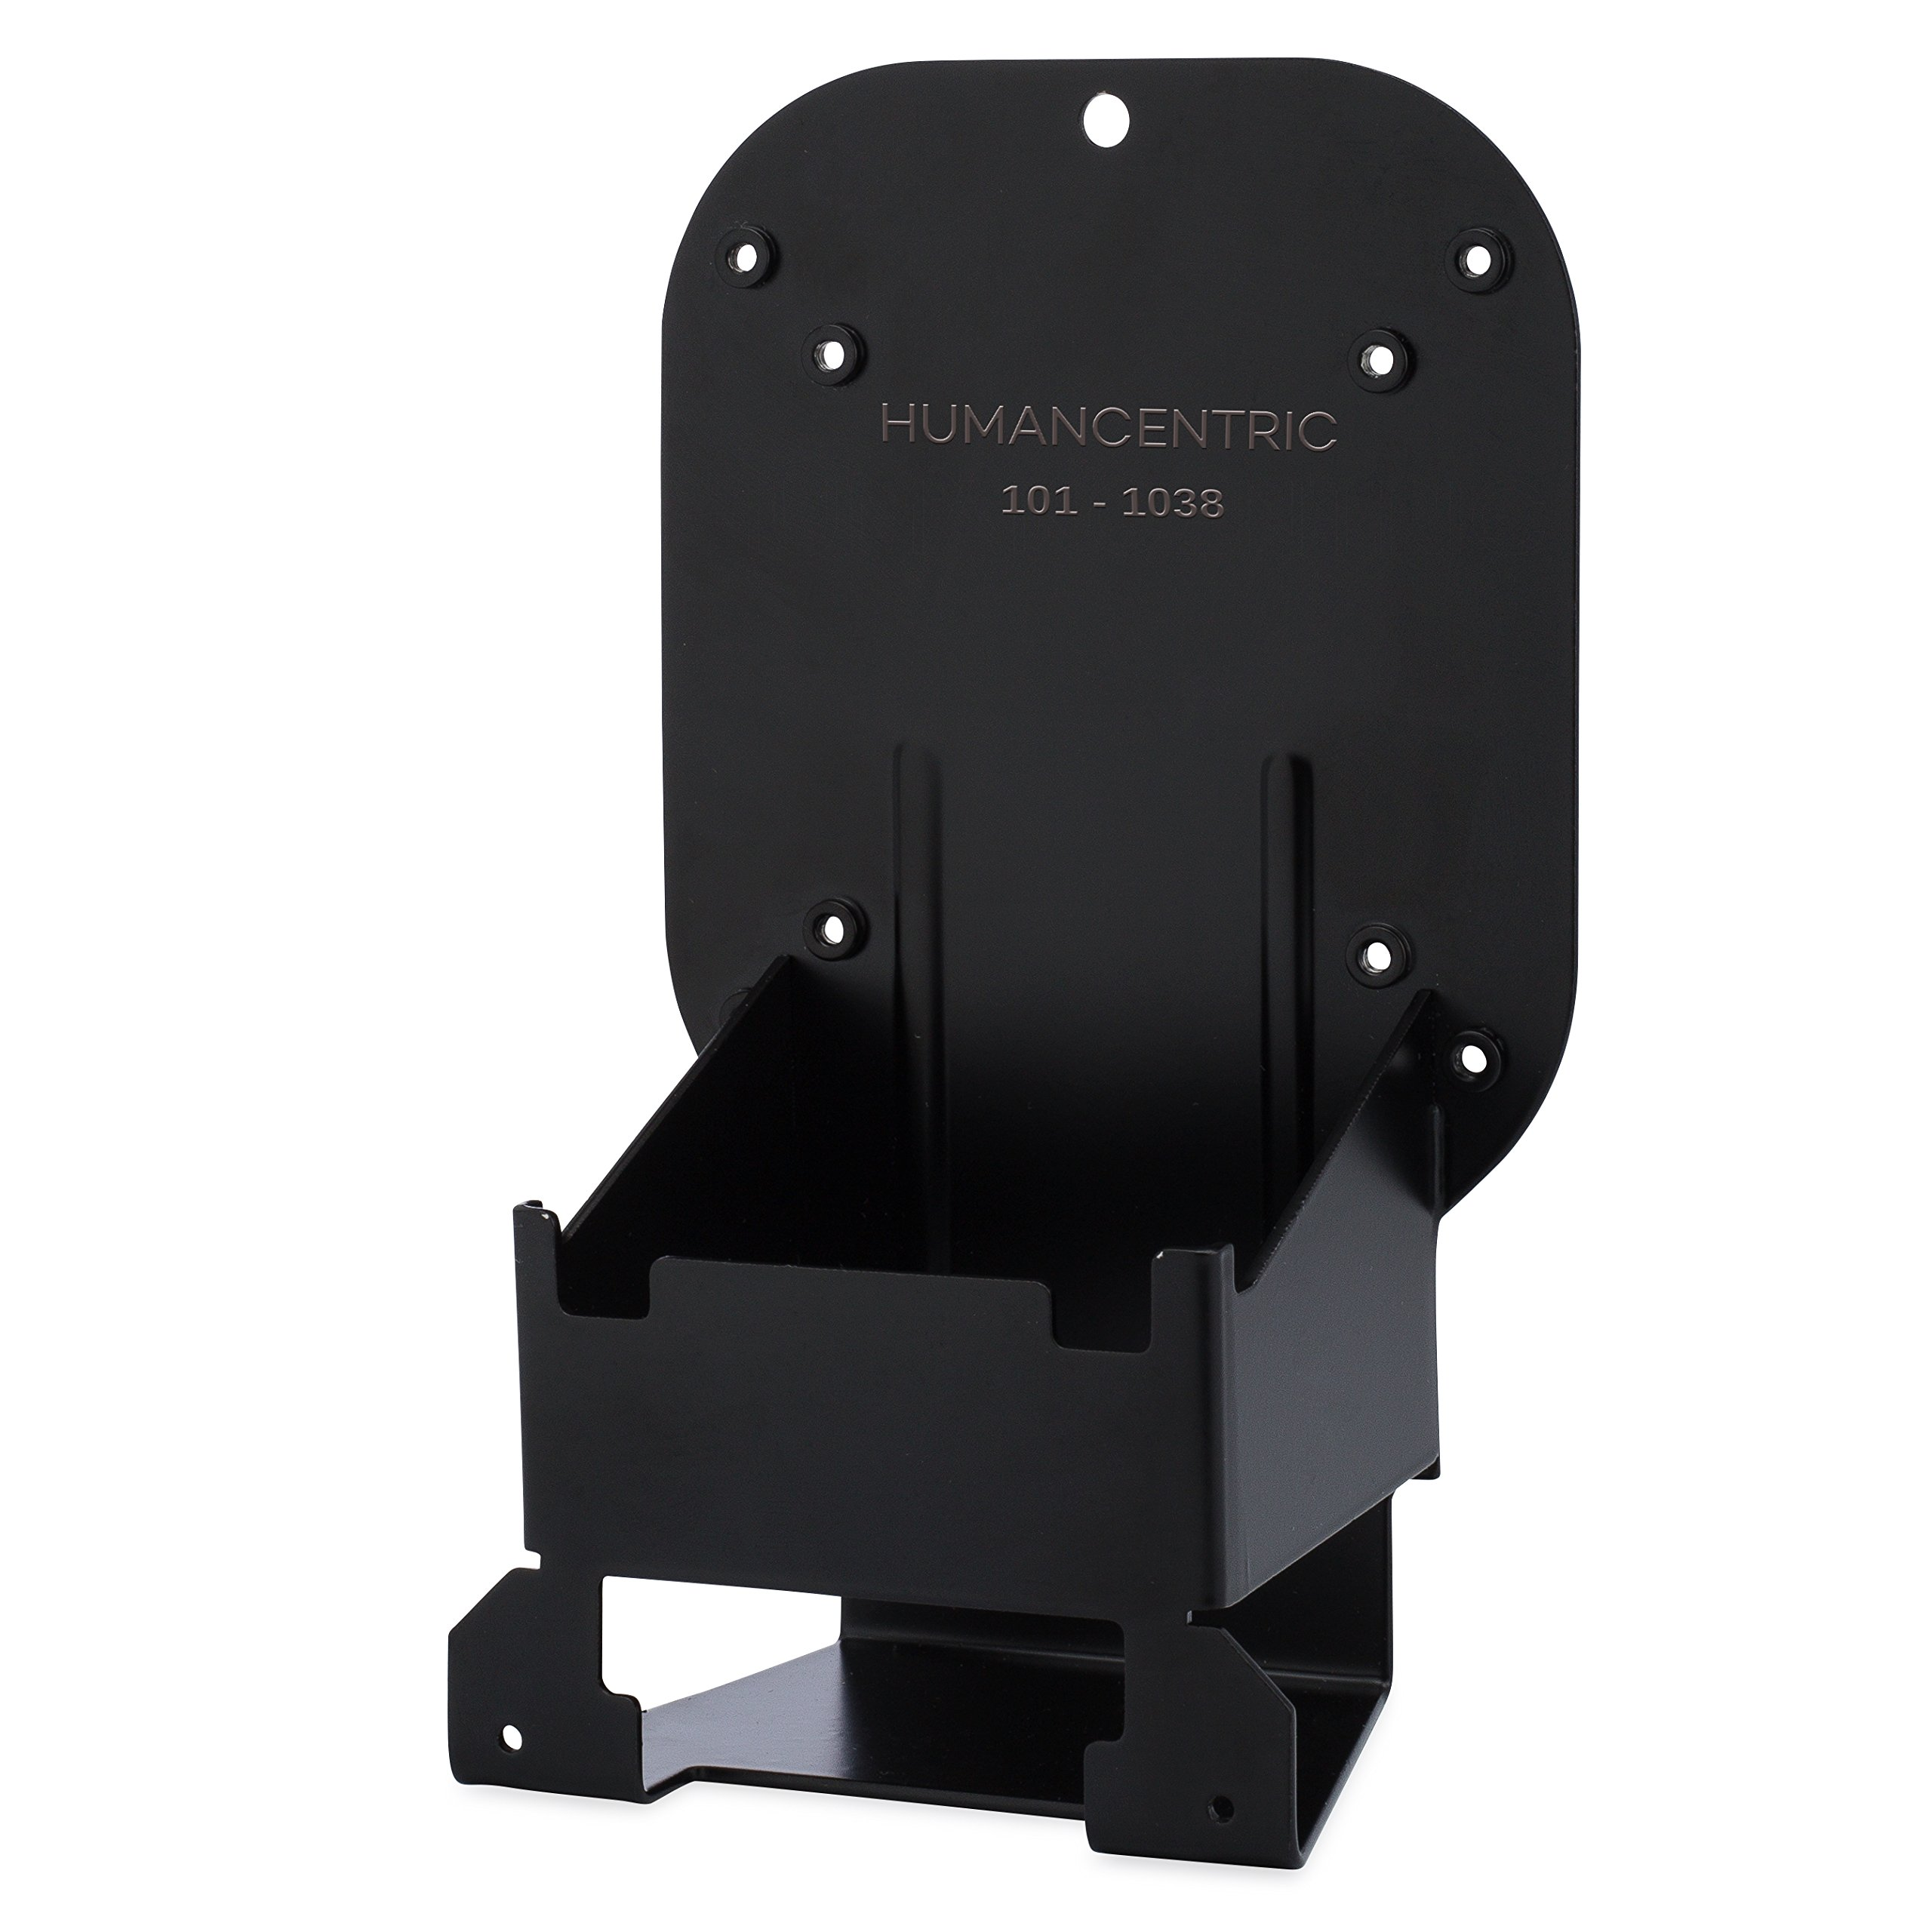 VESA Mount Adapter for LG Model 27MP58VQ-P | Only Fits One Model | by HumanCentric